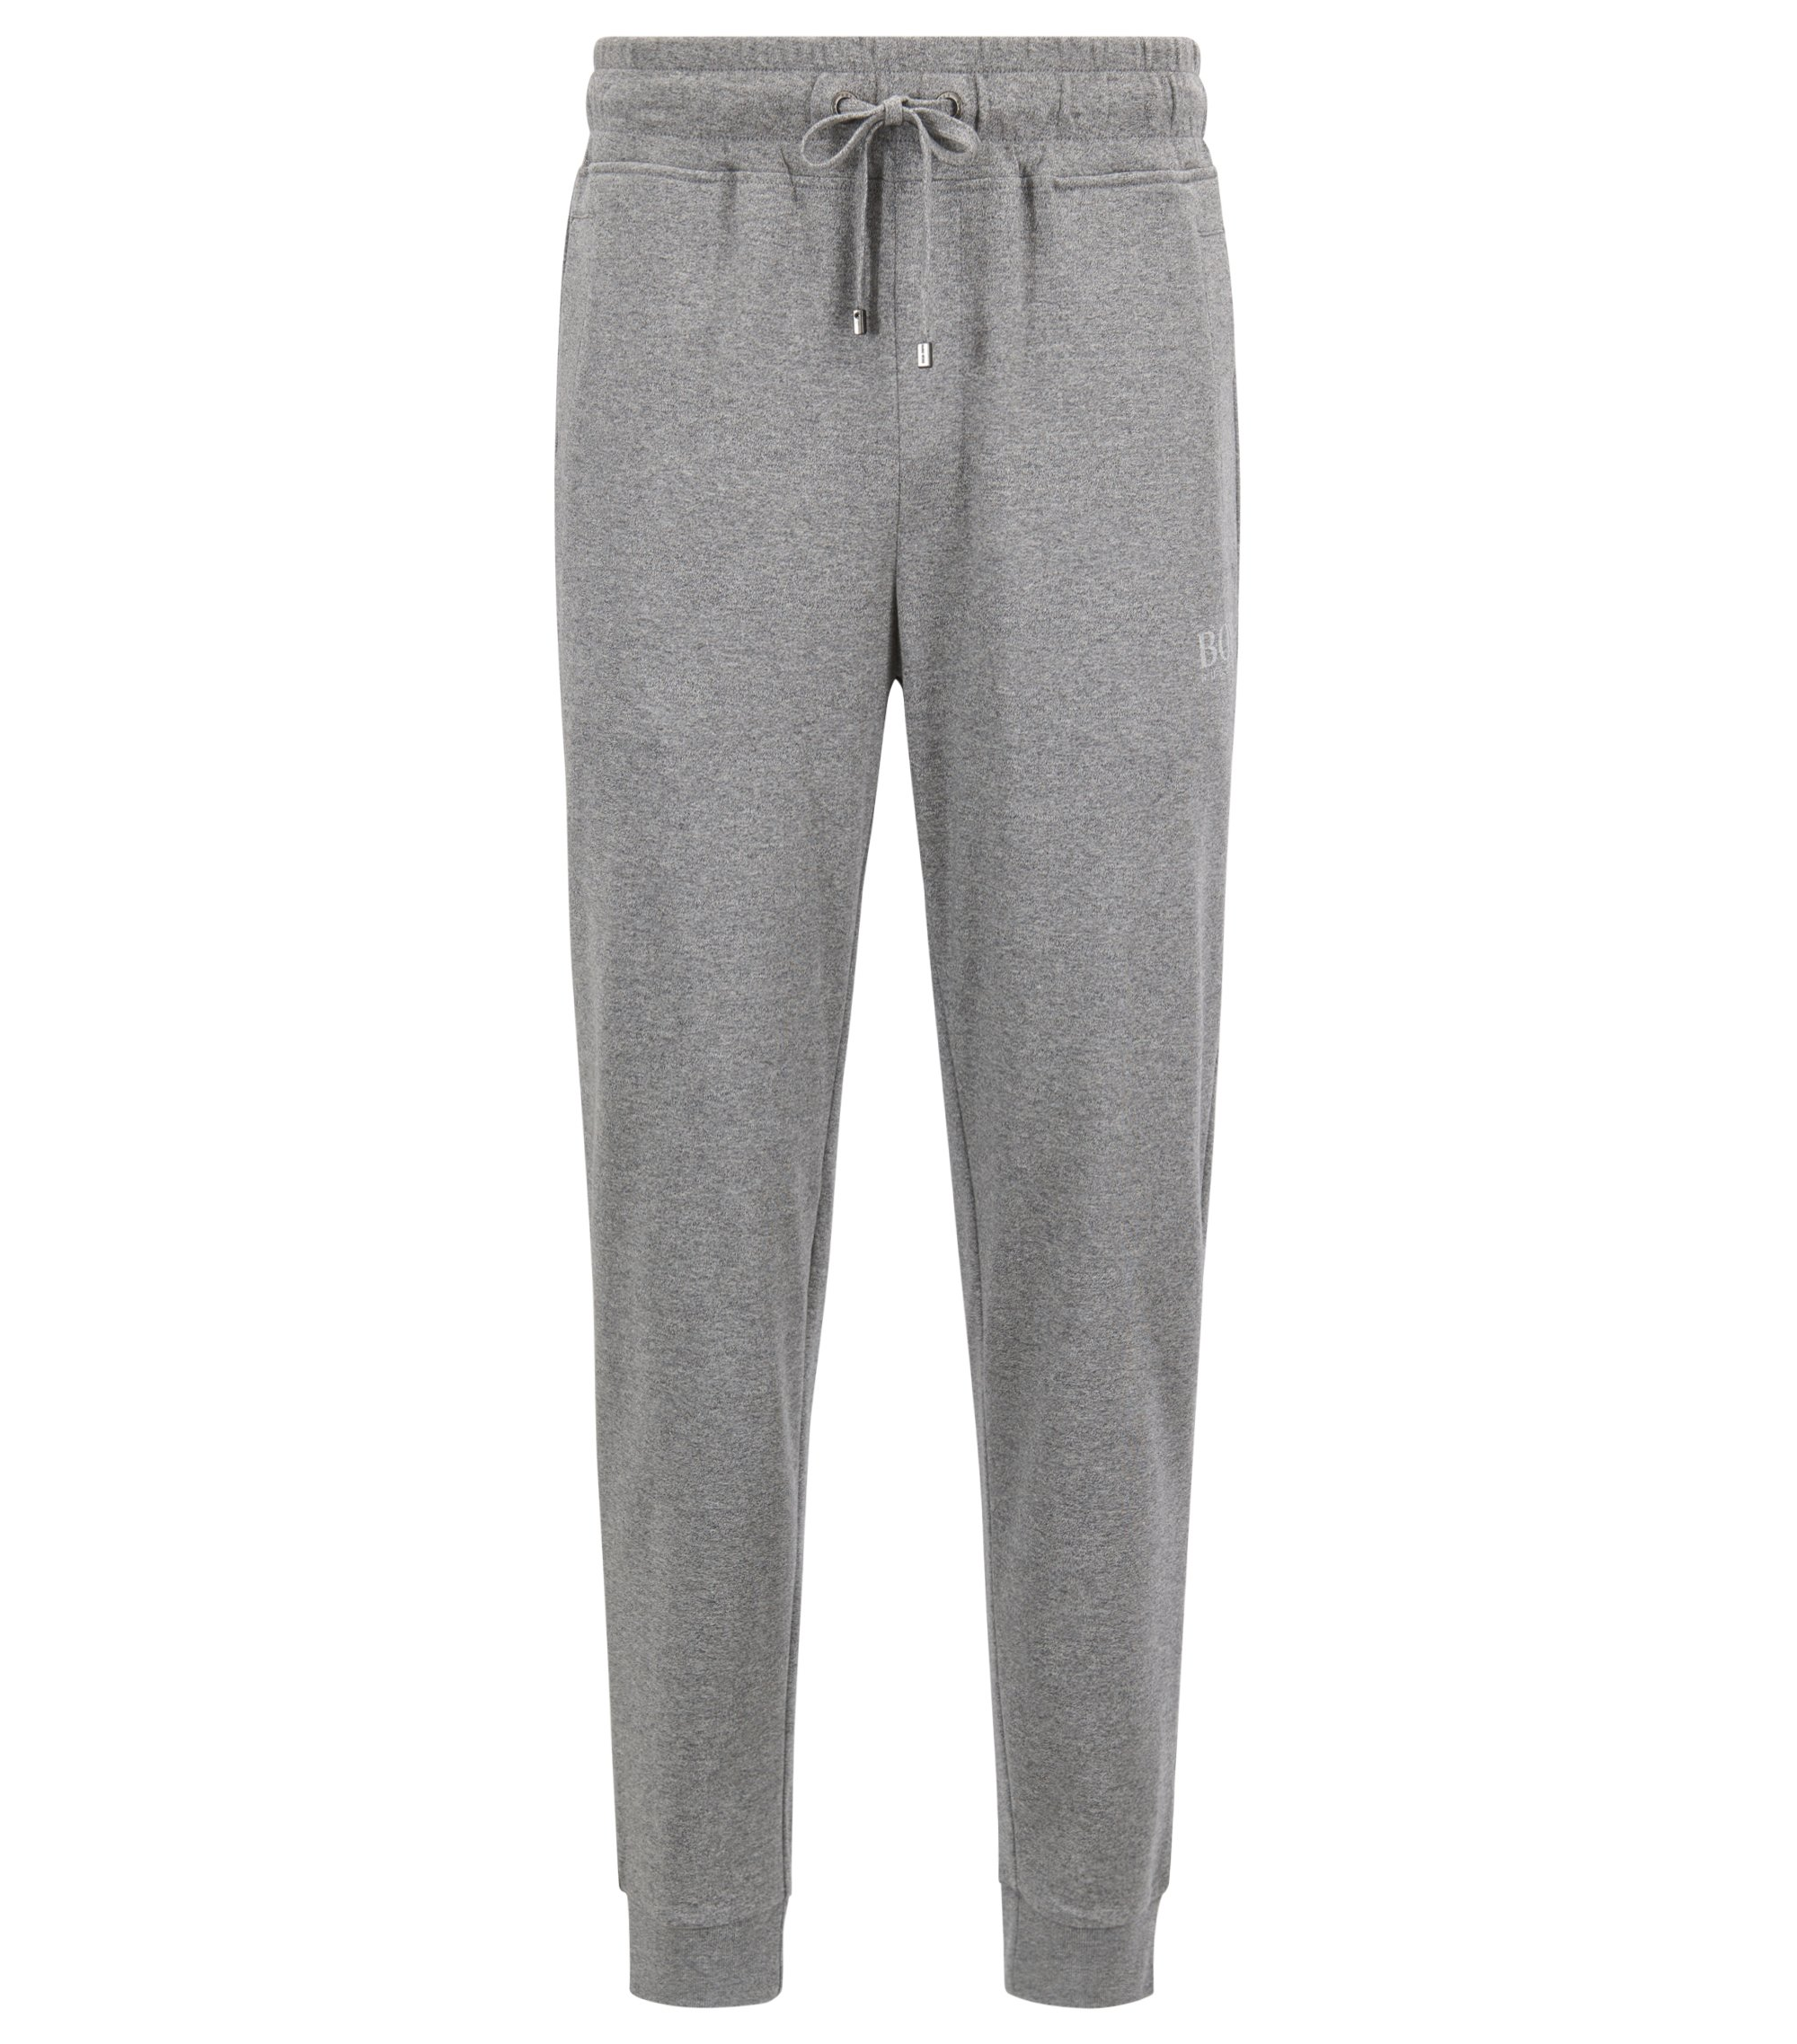 Loungewear trousers in mélange single-jersey cotton, Grey